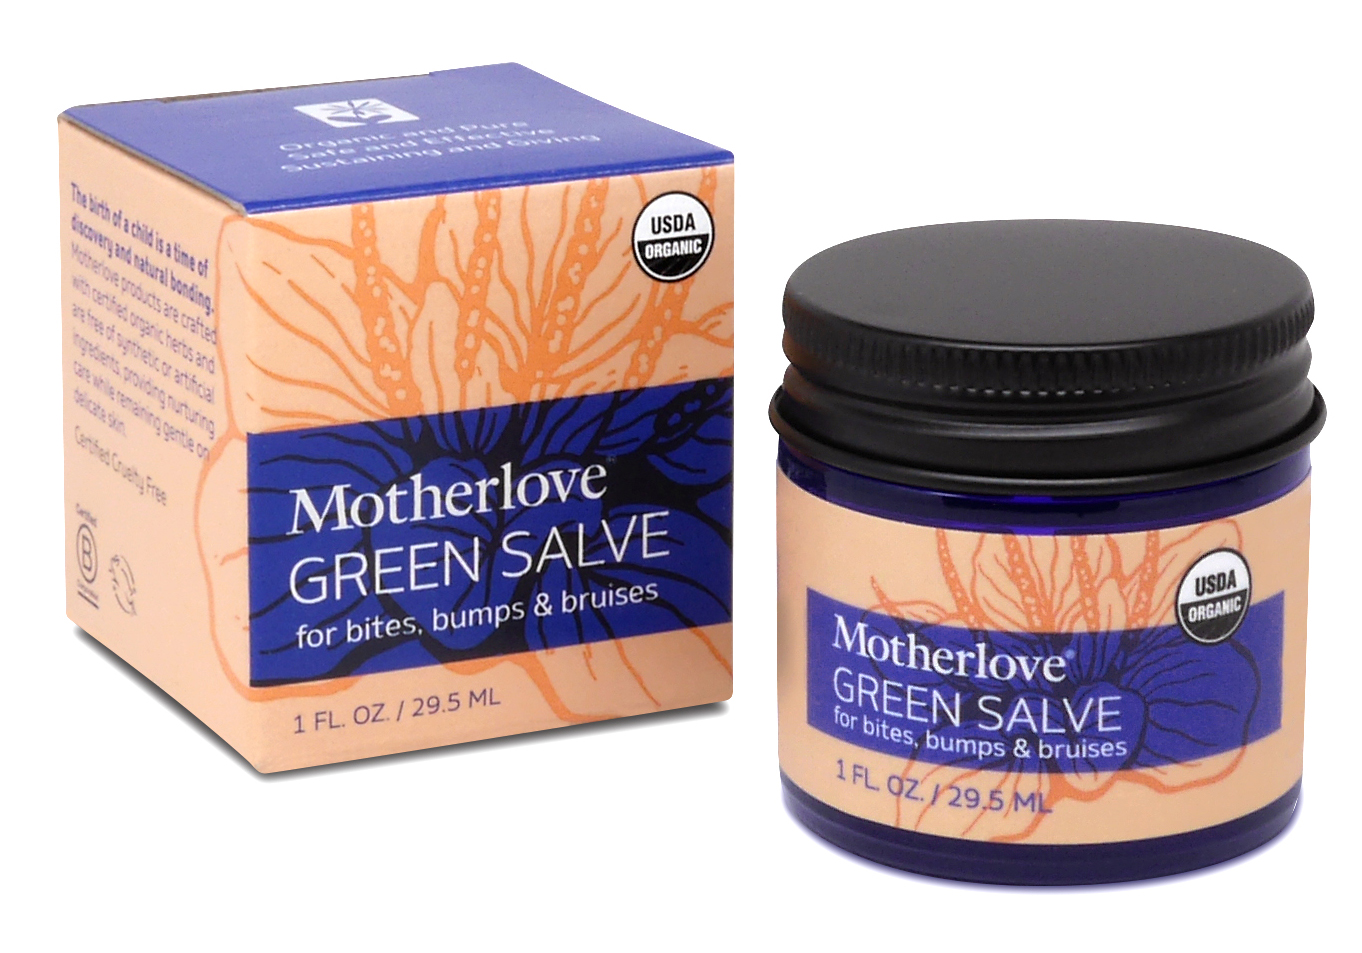 motherlove-green-salve-jar-box.jpg